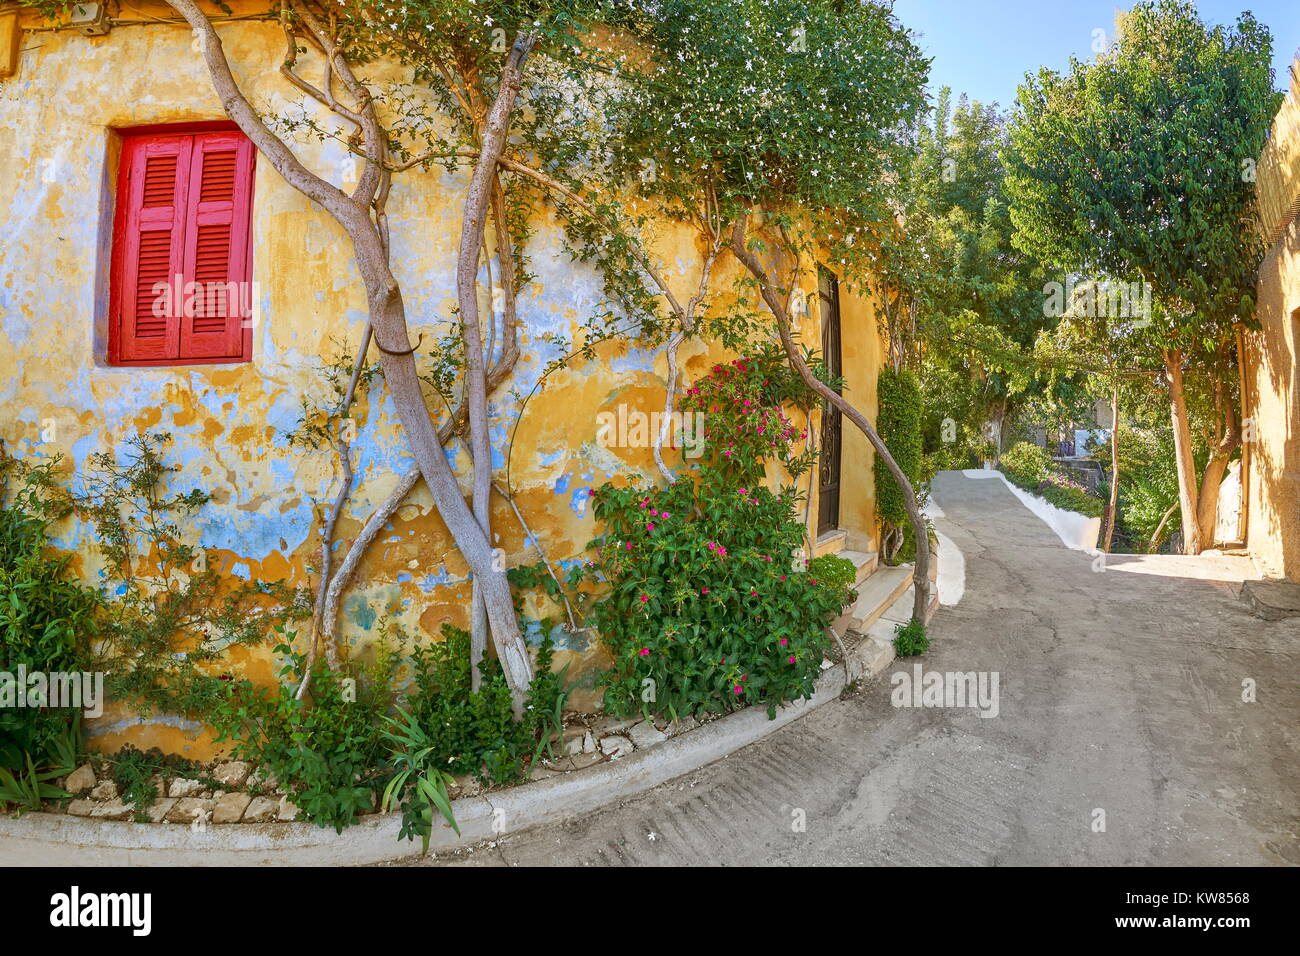 Anafiotika quarter under the Acropolis, neighborhood of Plaka, Athens, Greece - Stock Image